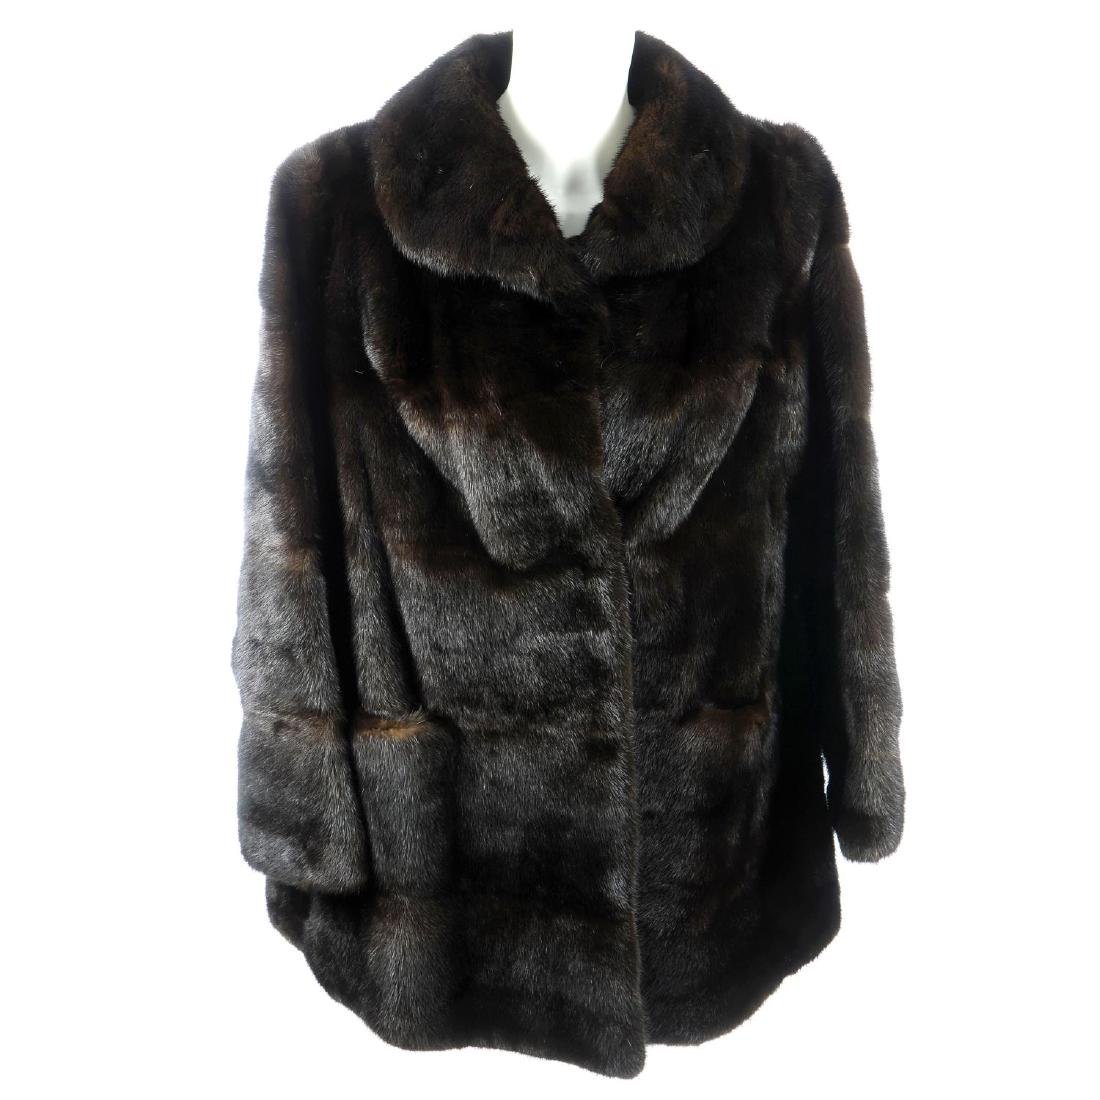 A ranch mink jacket. Featuring a lapel collar, hook and